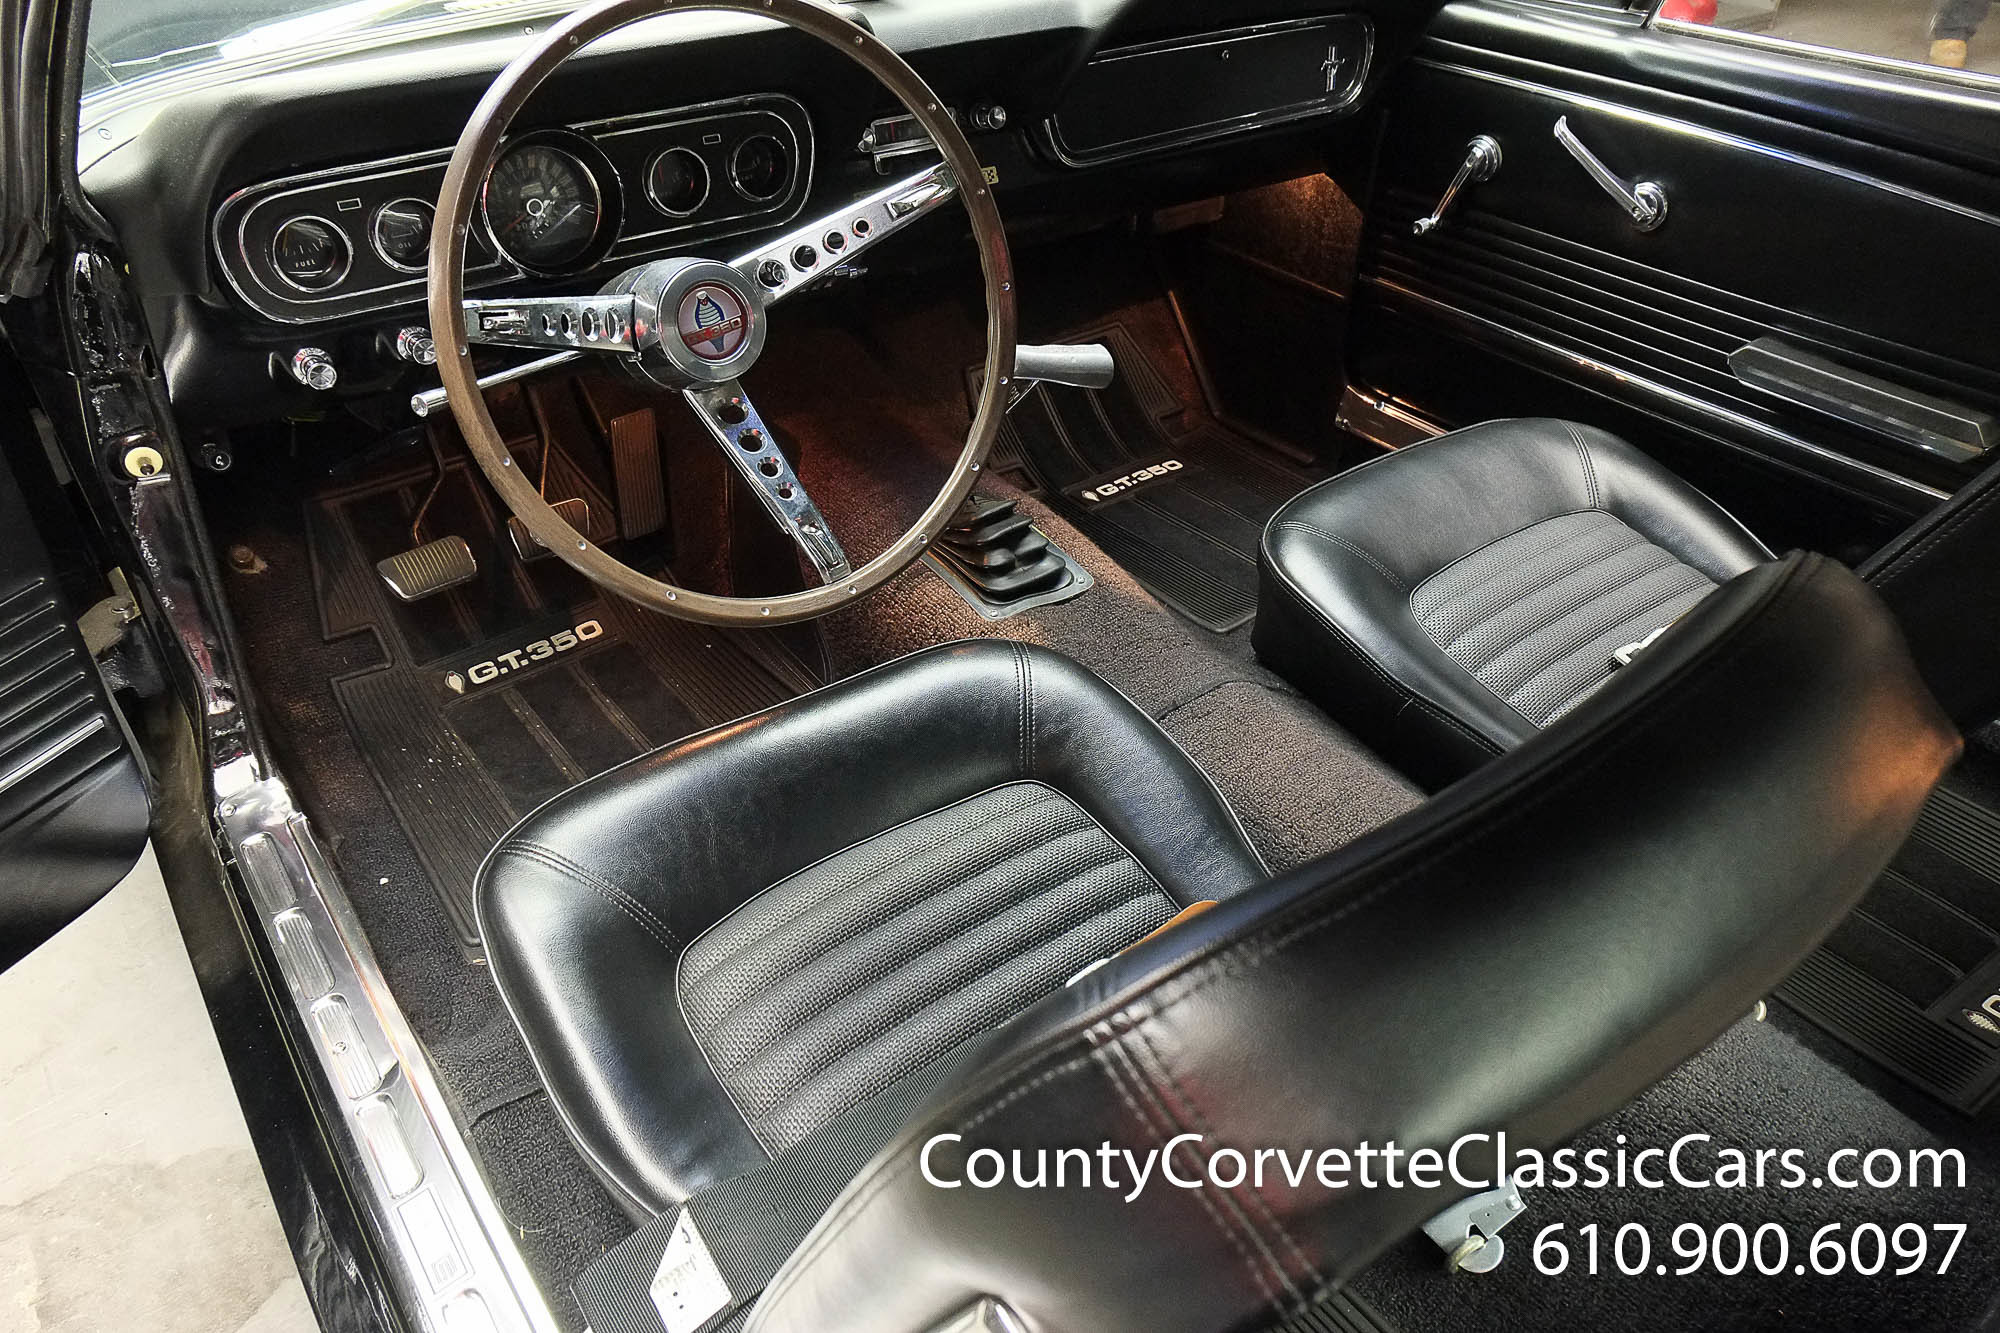 1966 Shelby GT350-H : 1966 Ford Shelby Mustang GT-350H, Hertz Rent-a-Racer, Authentic car